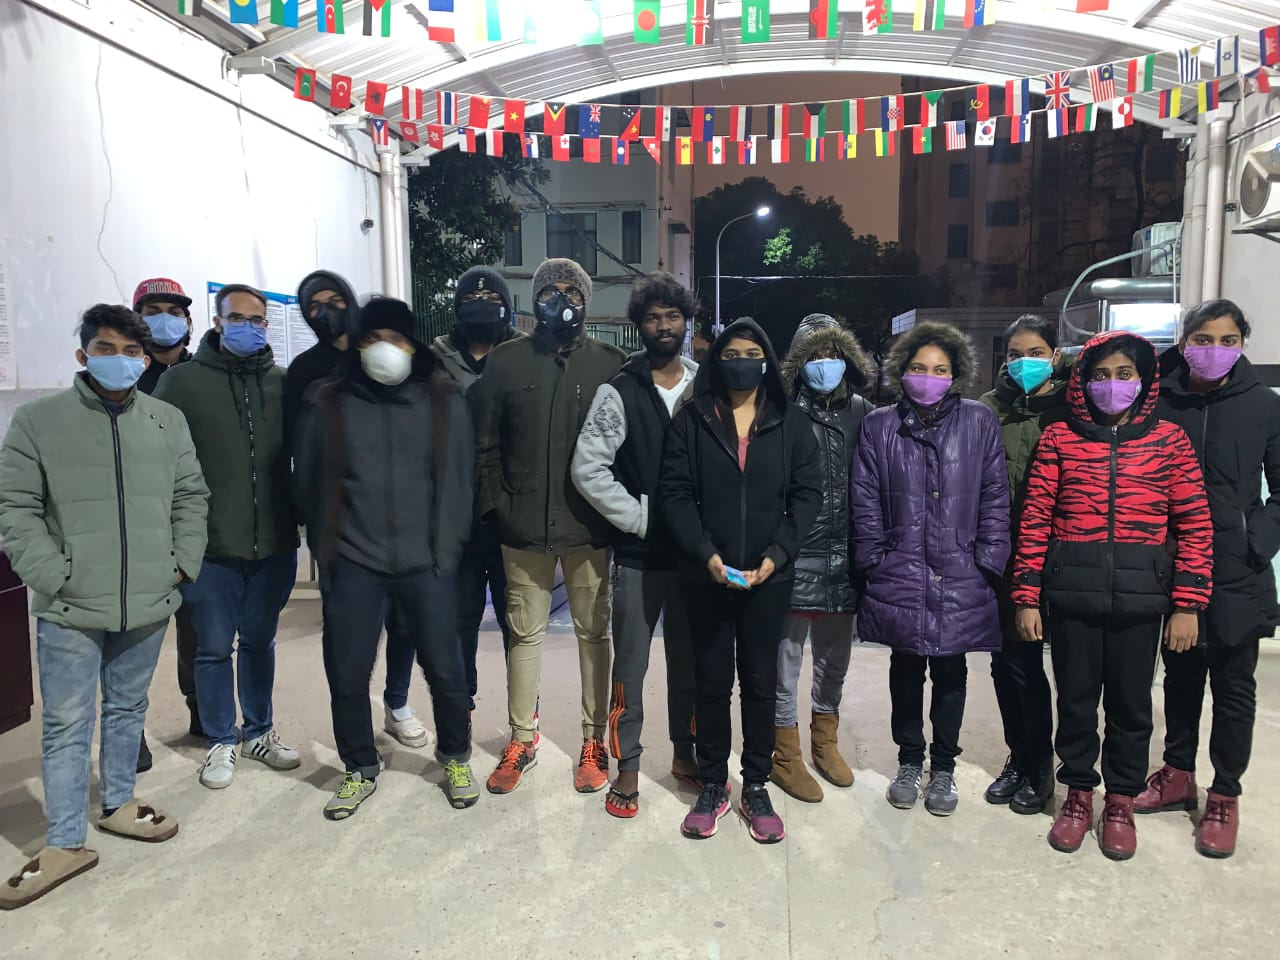 Indian students stand outside the foreign dormitory entrance at Wuhan Medical University.